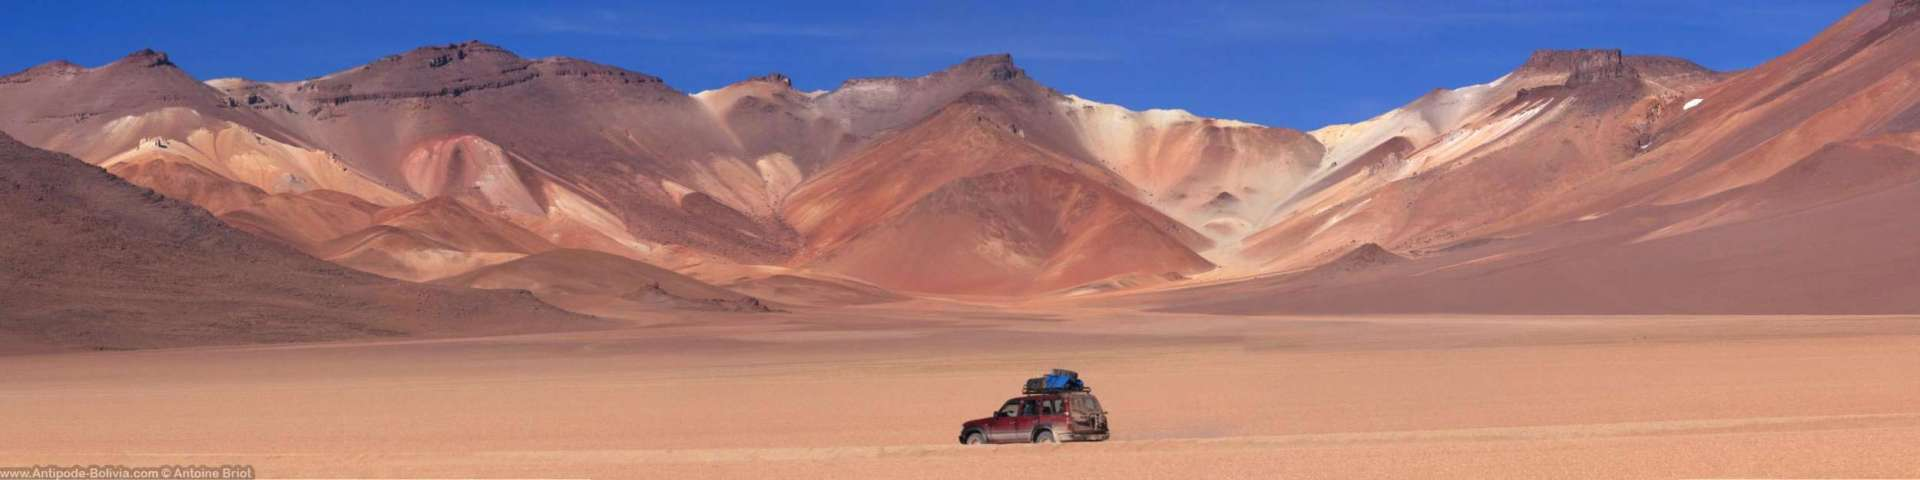 Escapade from Tupiza, to the South Lipez and the Salar of Uyuni, in 4 days